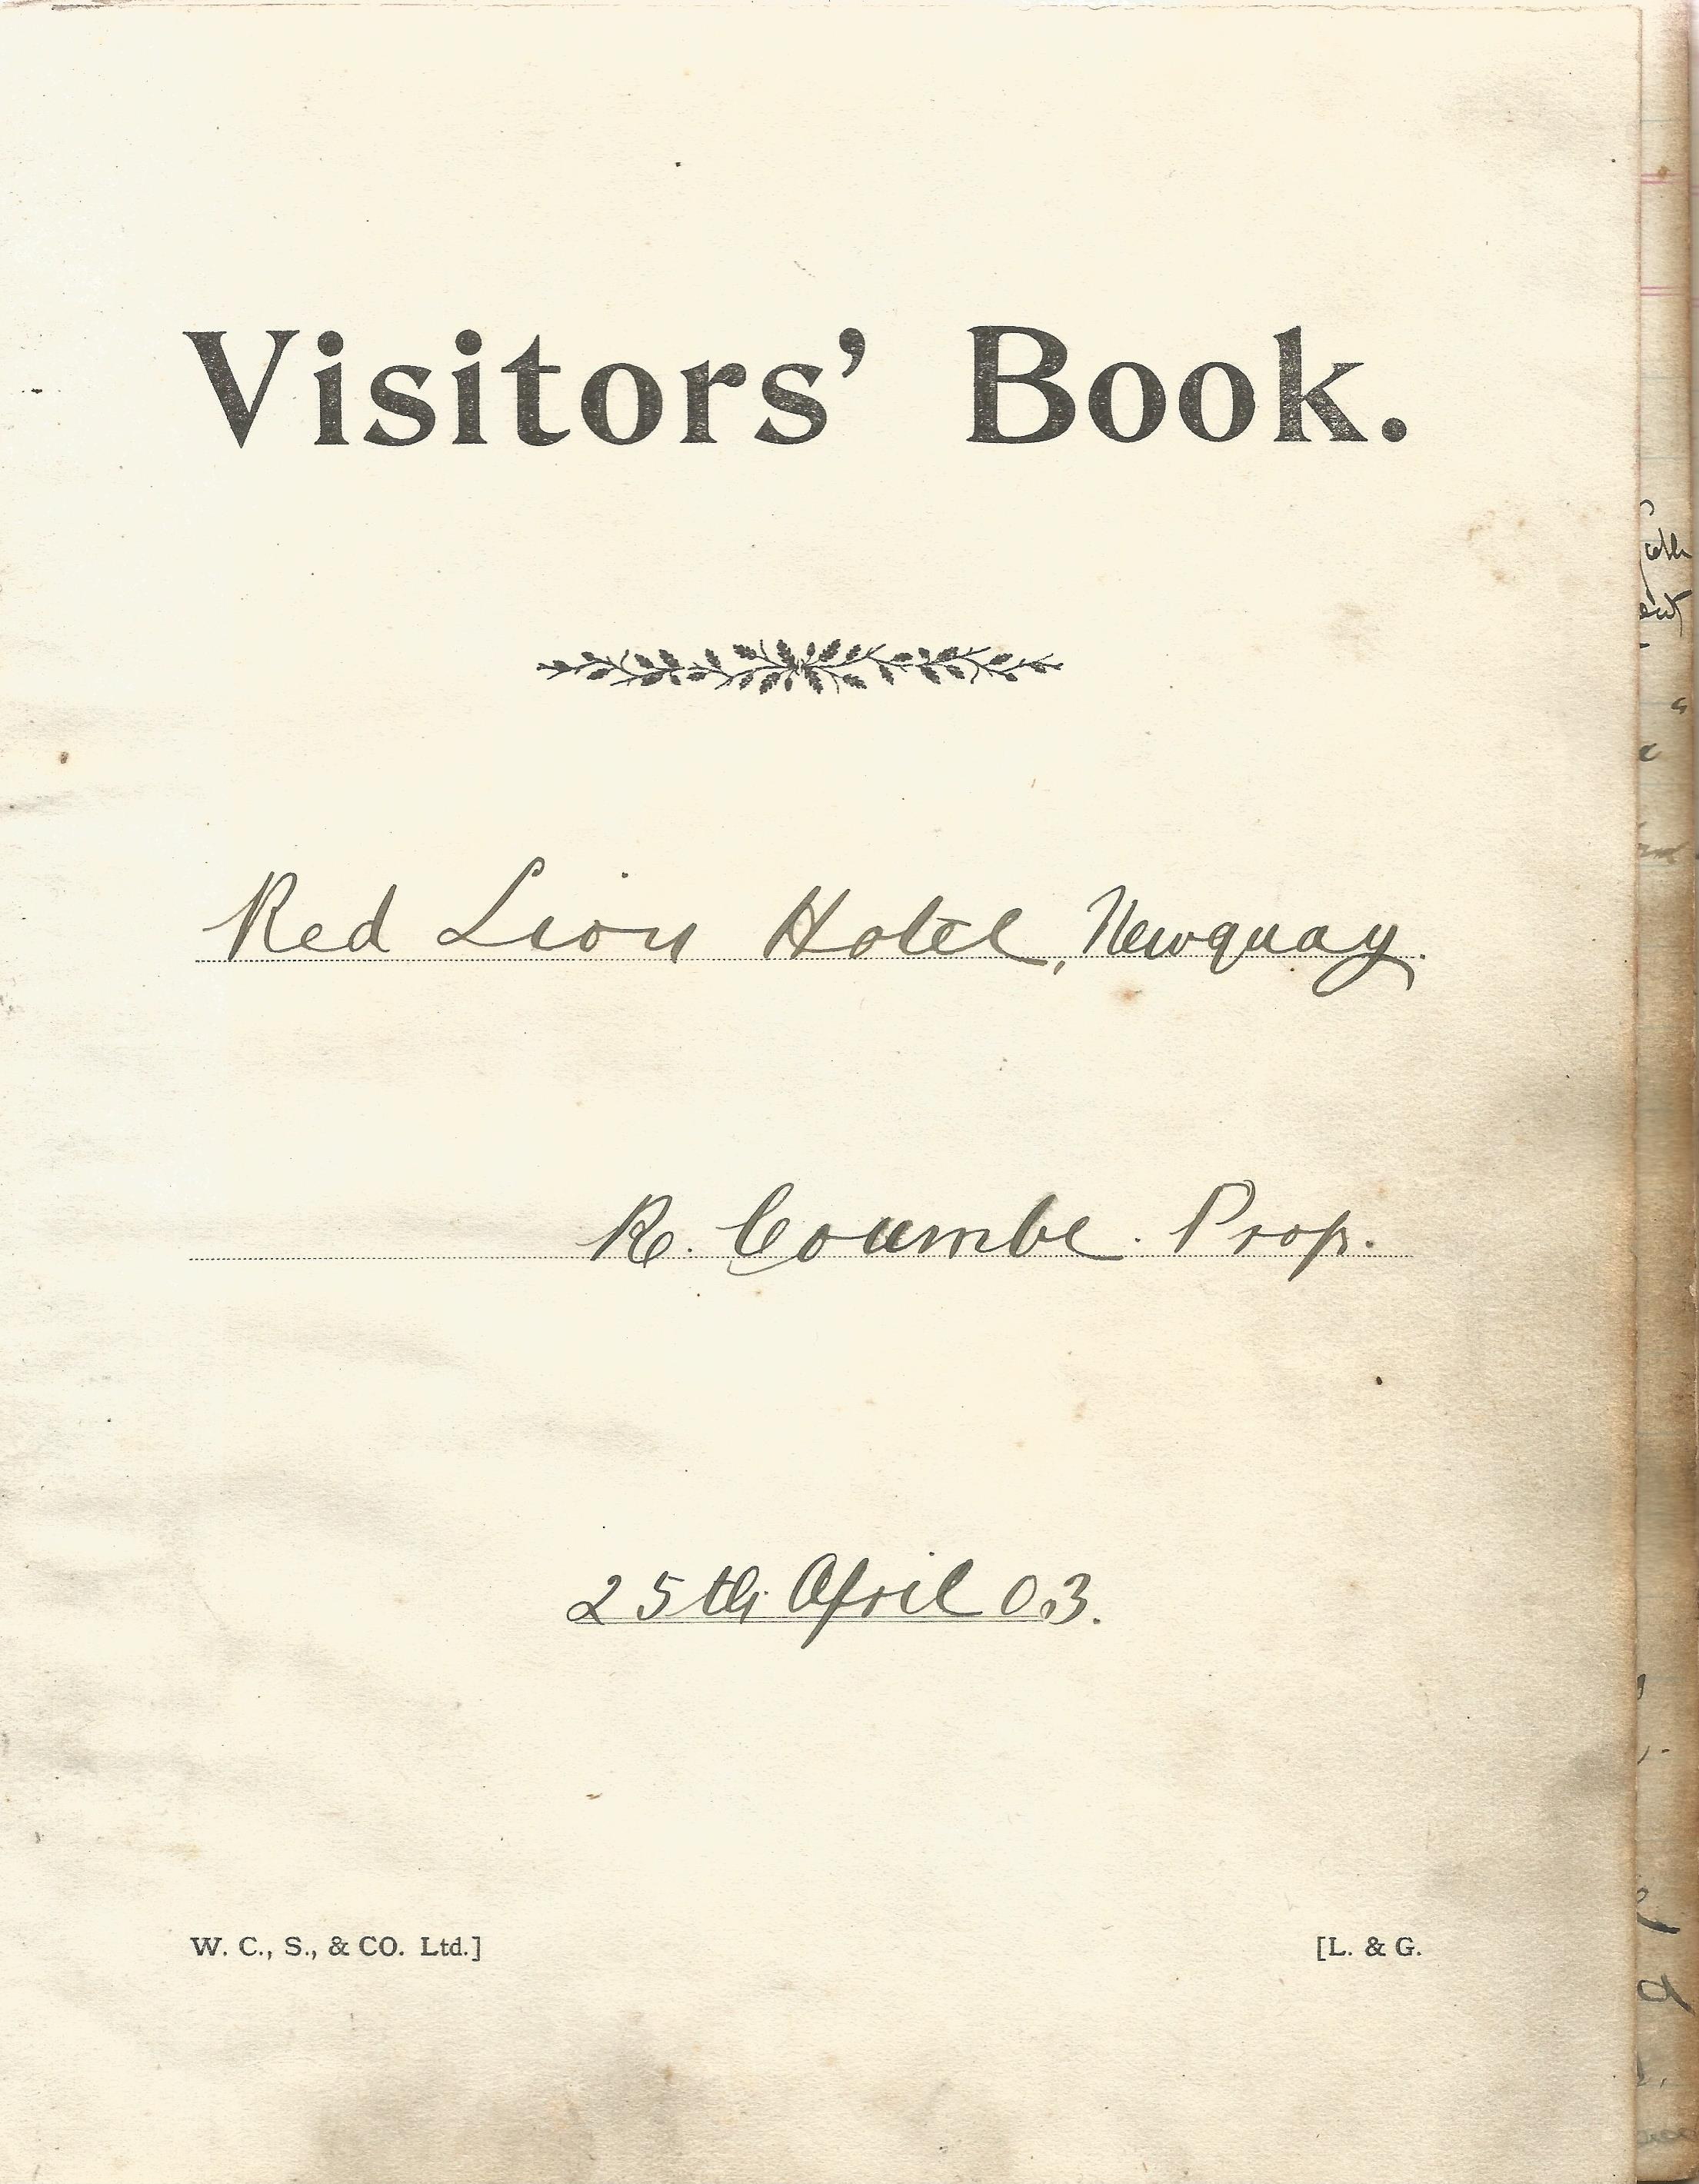 Visitors Book Red Lion Hotel Newquay with dates and Name & Address of their guests 1903 1930 at - Image 2 of 8